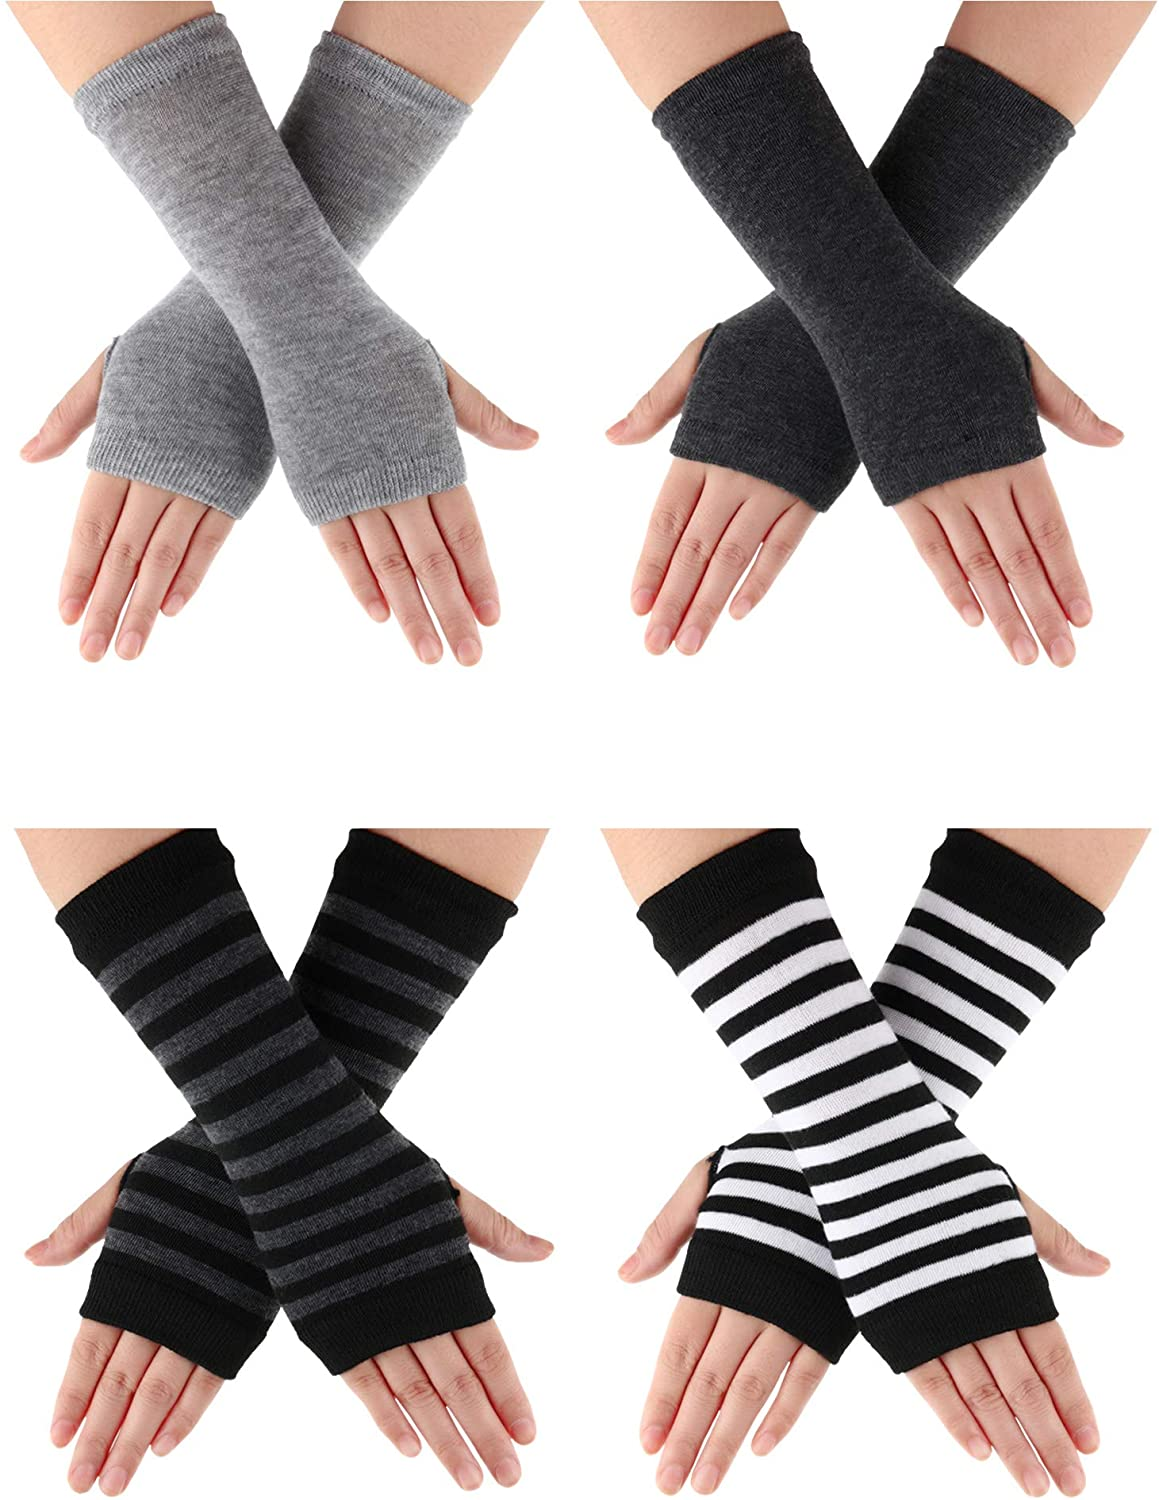 4 Pairs Cashmere Feel Wrist Fingerless Gloves with Thumb Hole Unisex Cashmere Warm Gloves